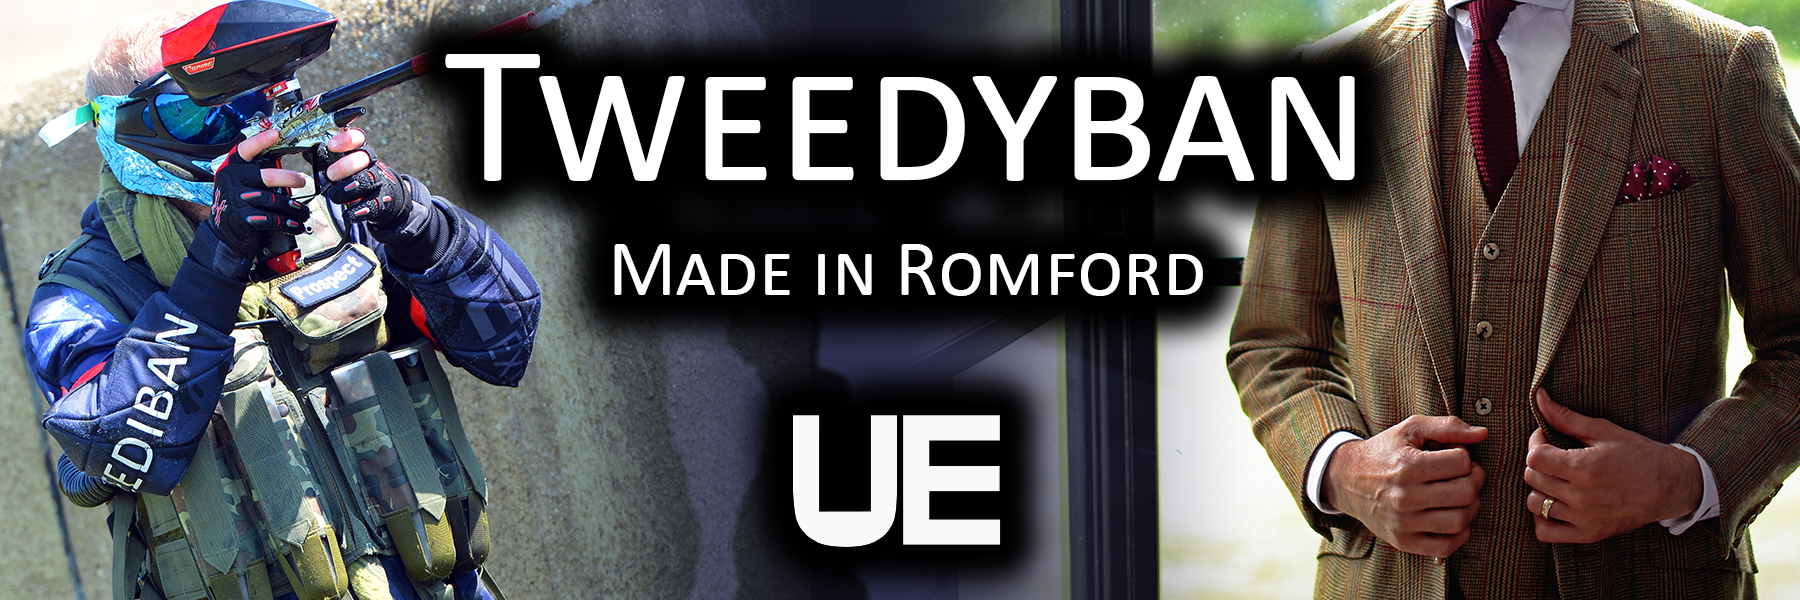 Tweedyban | Made in Romford